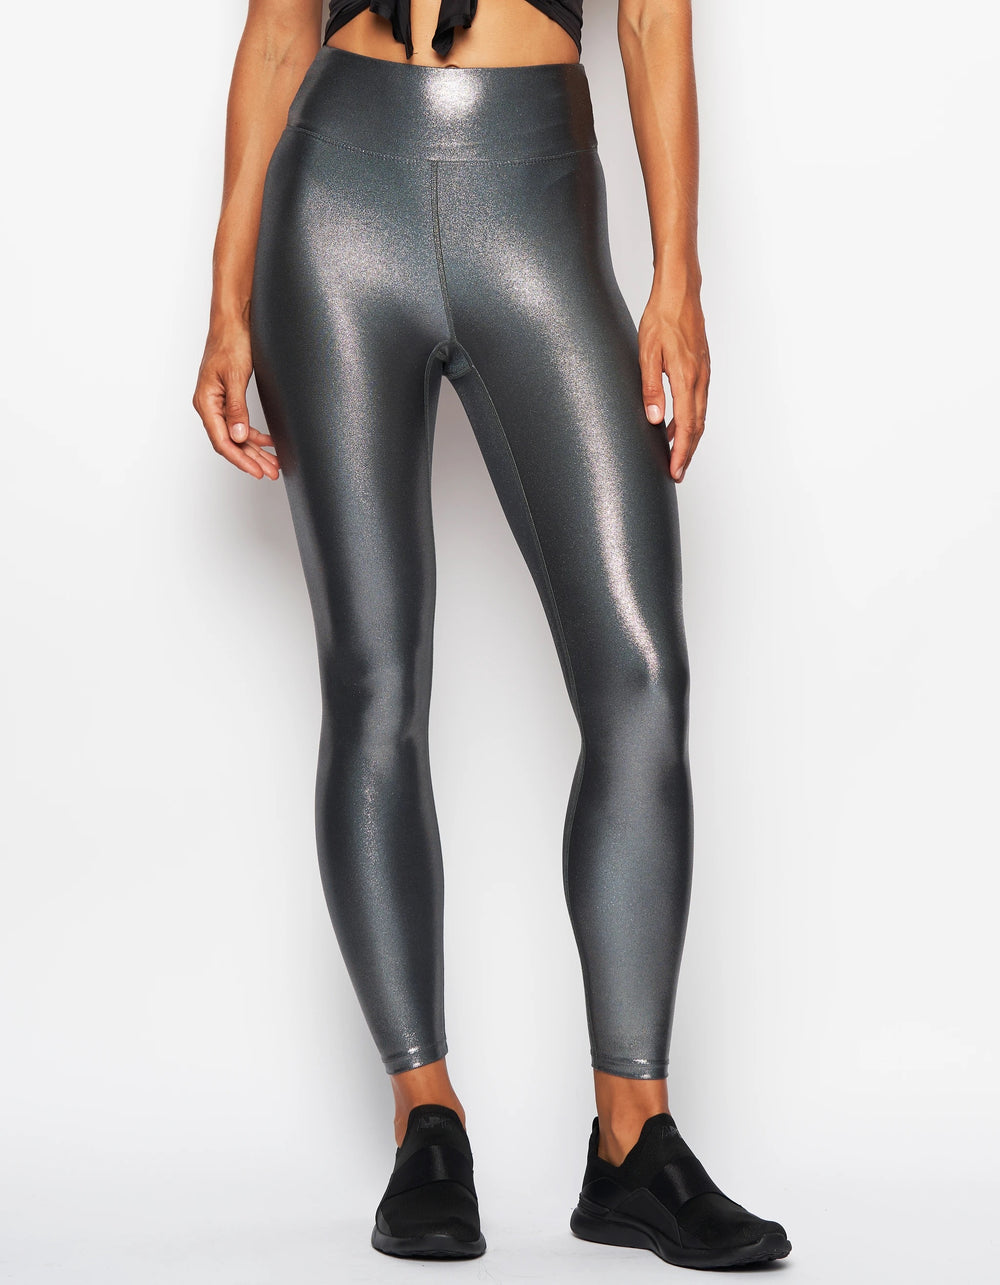 Marvel Legging in Mist